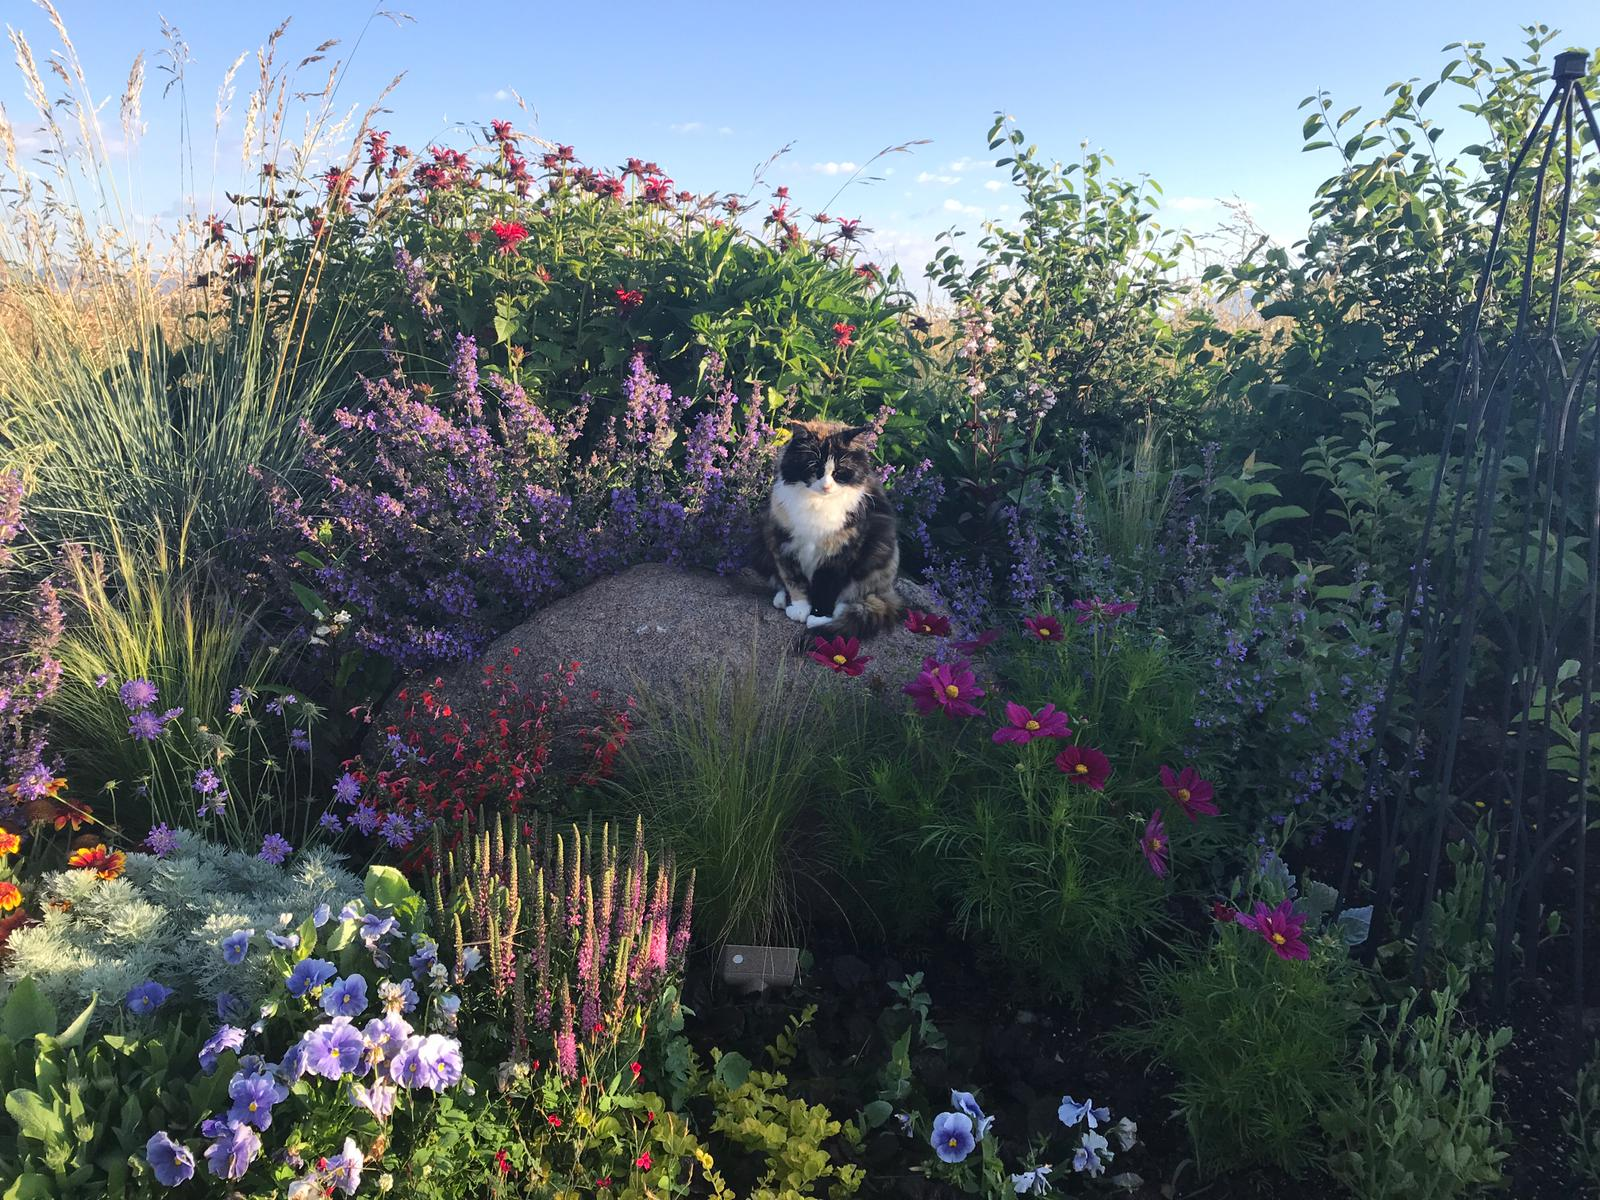 Welcome to our blog! - This is where we will share progress pics, new projects, and more than a few animal pics. (Our cat Turtle is pictured to the side.)